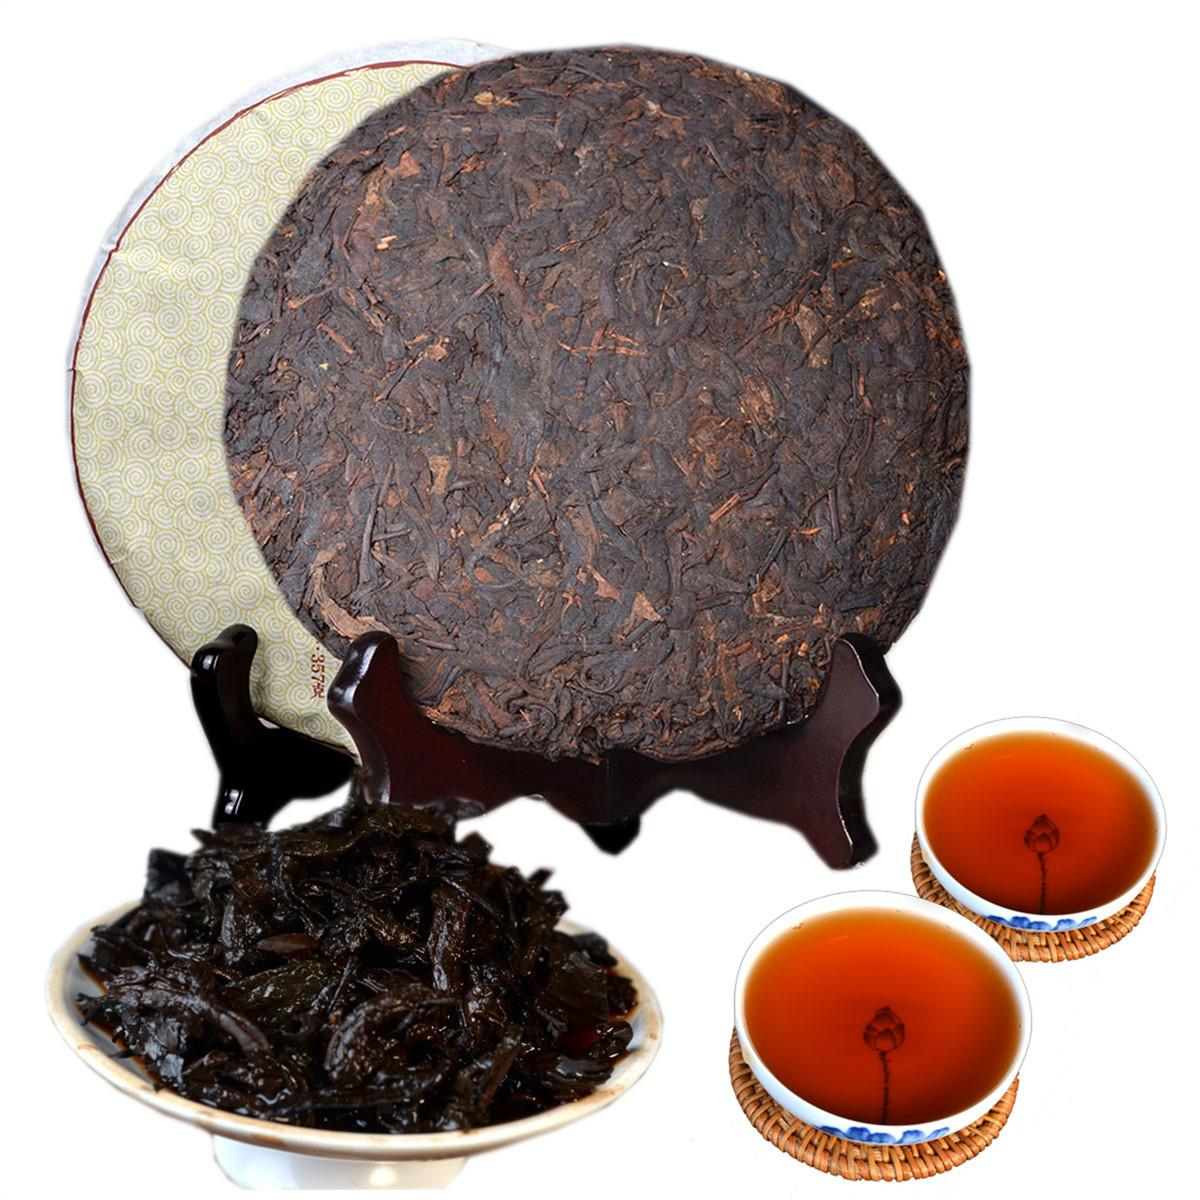 357g Yunnan 8 Years Ancient Fragrance Puer Tea Raw Puer Tea Cake Organic Natural Pu'er Oldest Tree Green Puer Preference Green Food